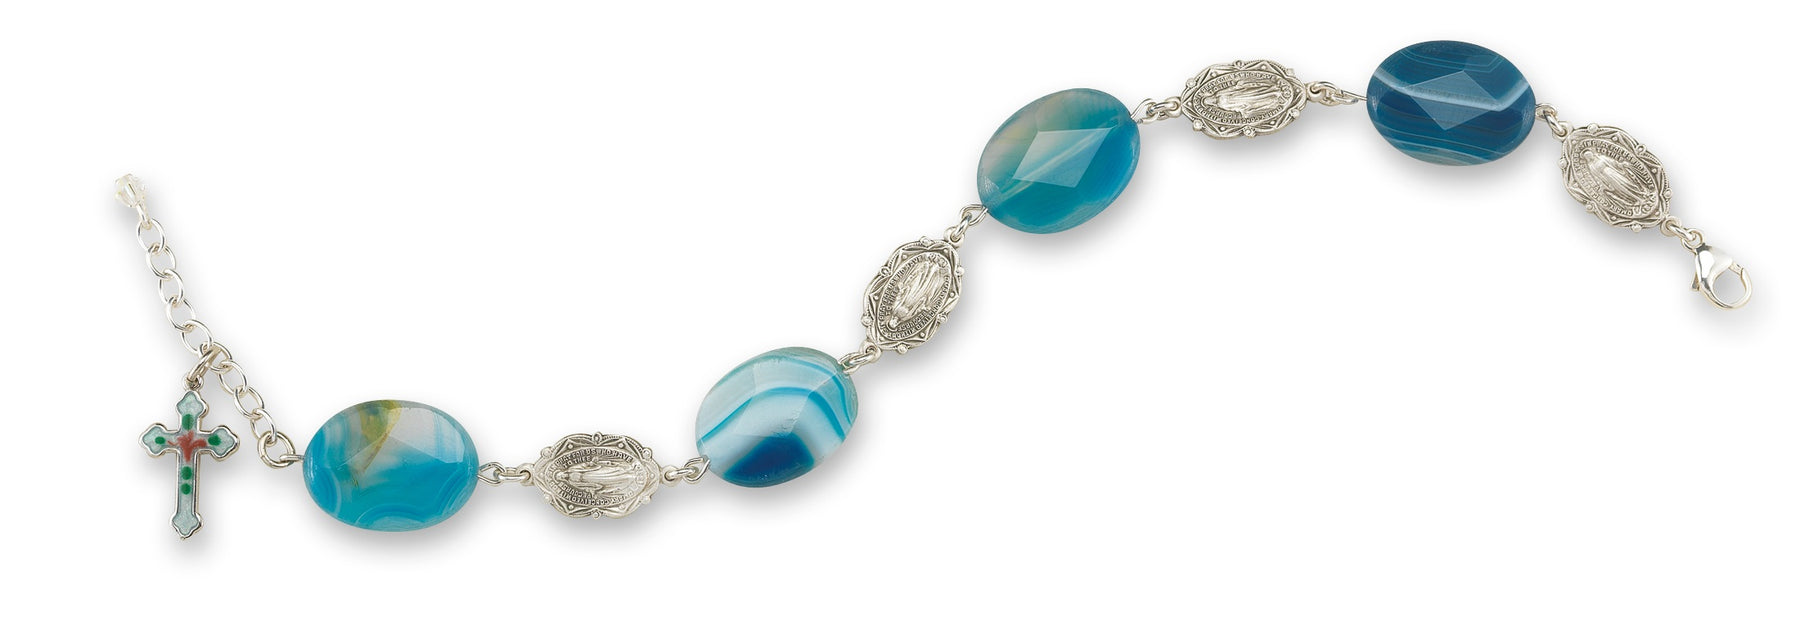 Faceted Blue Agate Stone Rosary Bracelet